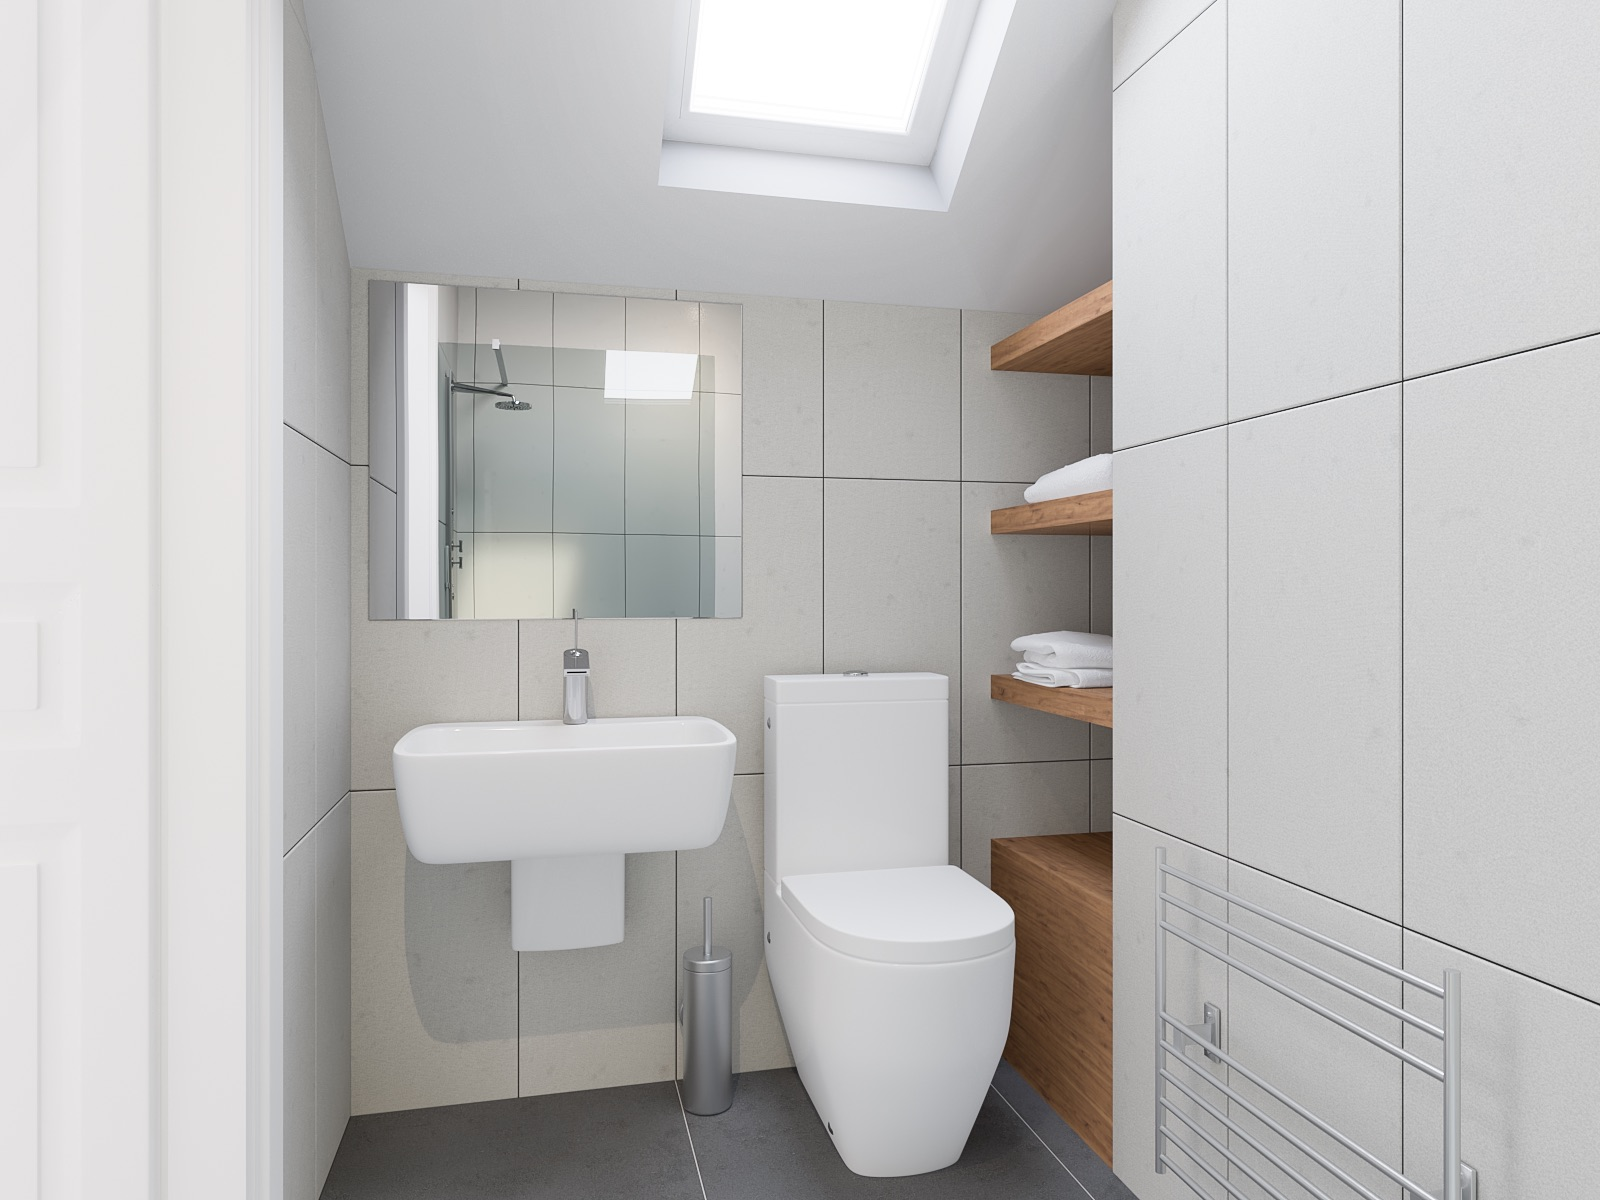 A 3D photo-identical image of a loft conversion en-suite bathrooms in white. Featuring a wall-mounted basin with mirrored vanity over,